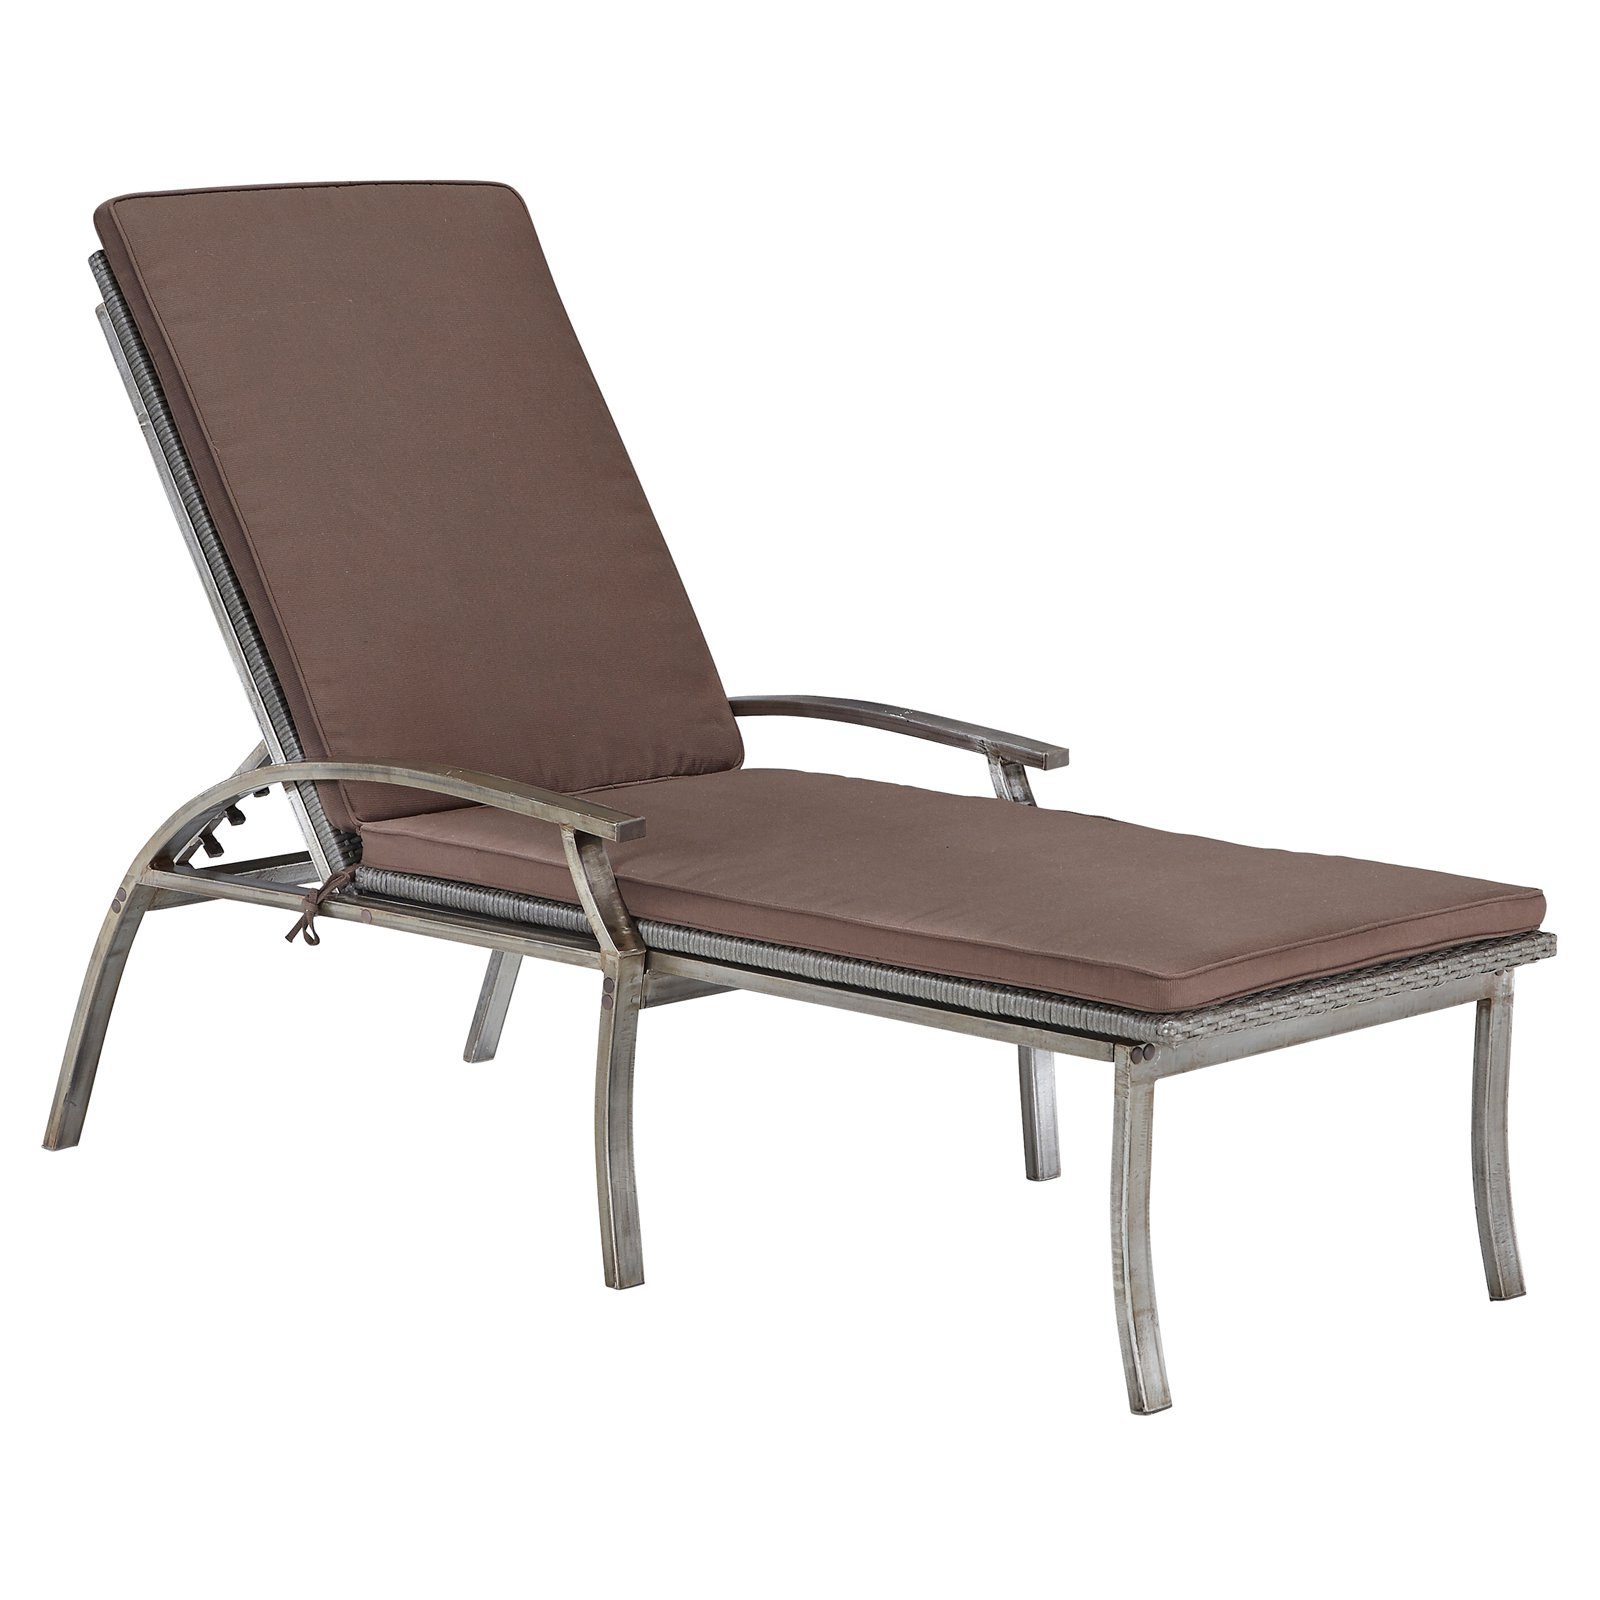 Home Styles Urban Outdoor Chaise Lounge Chair, Aged Metal